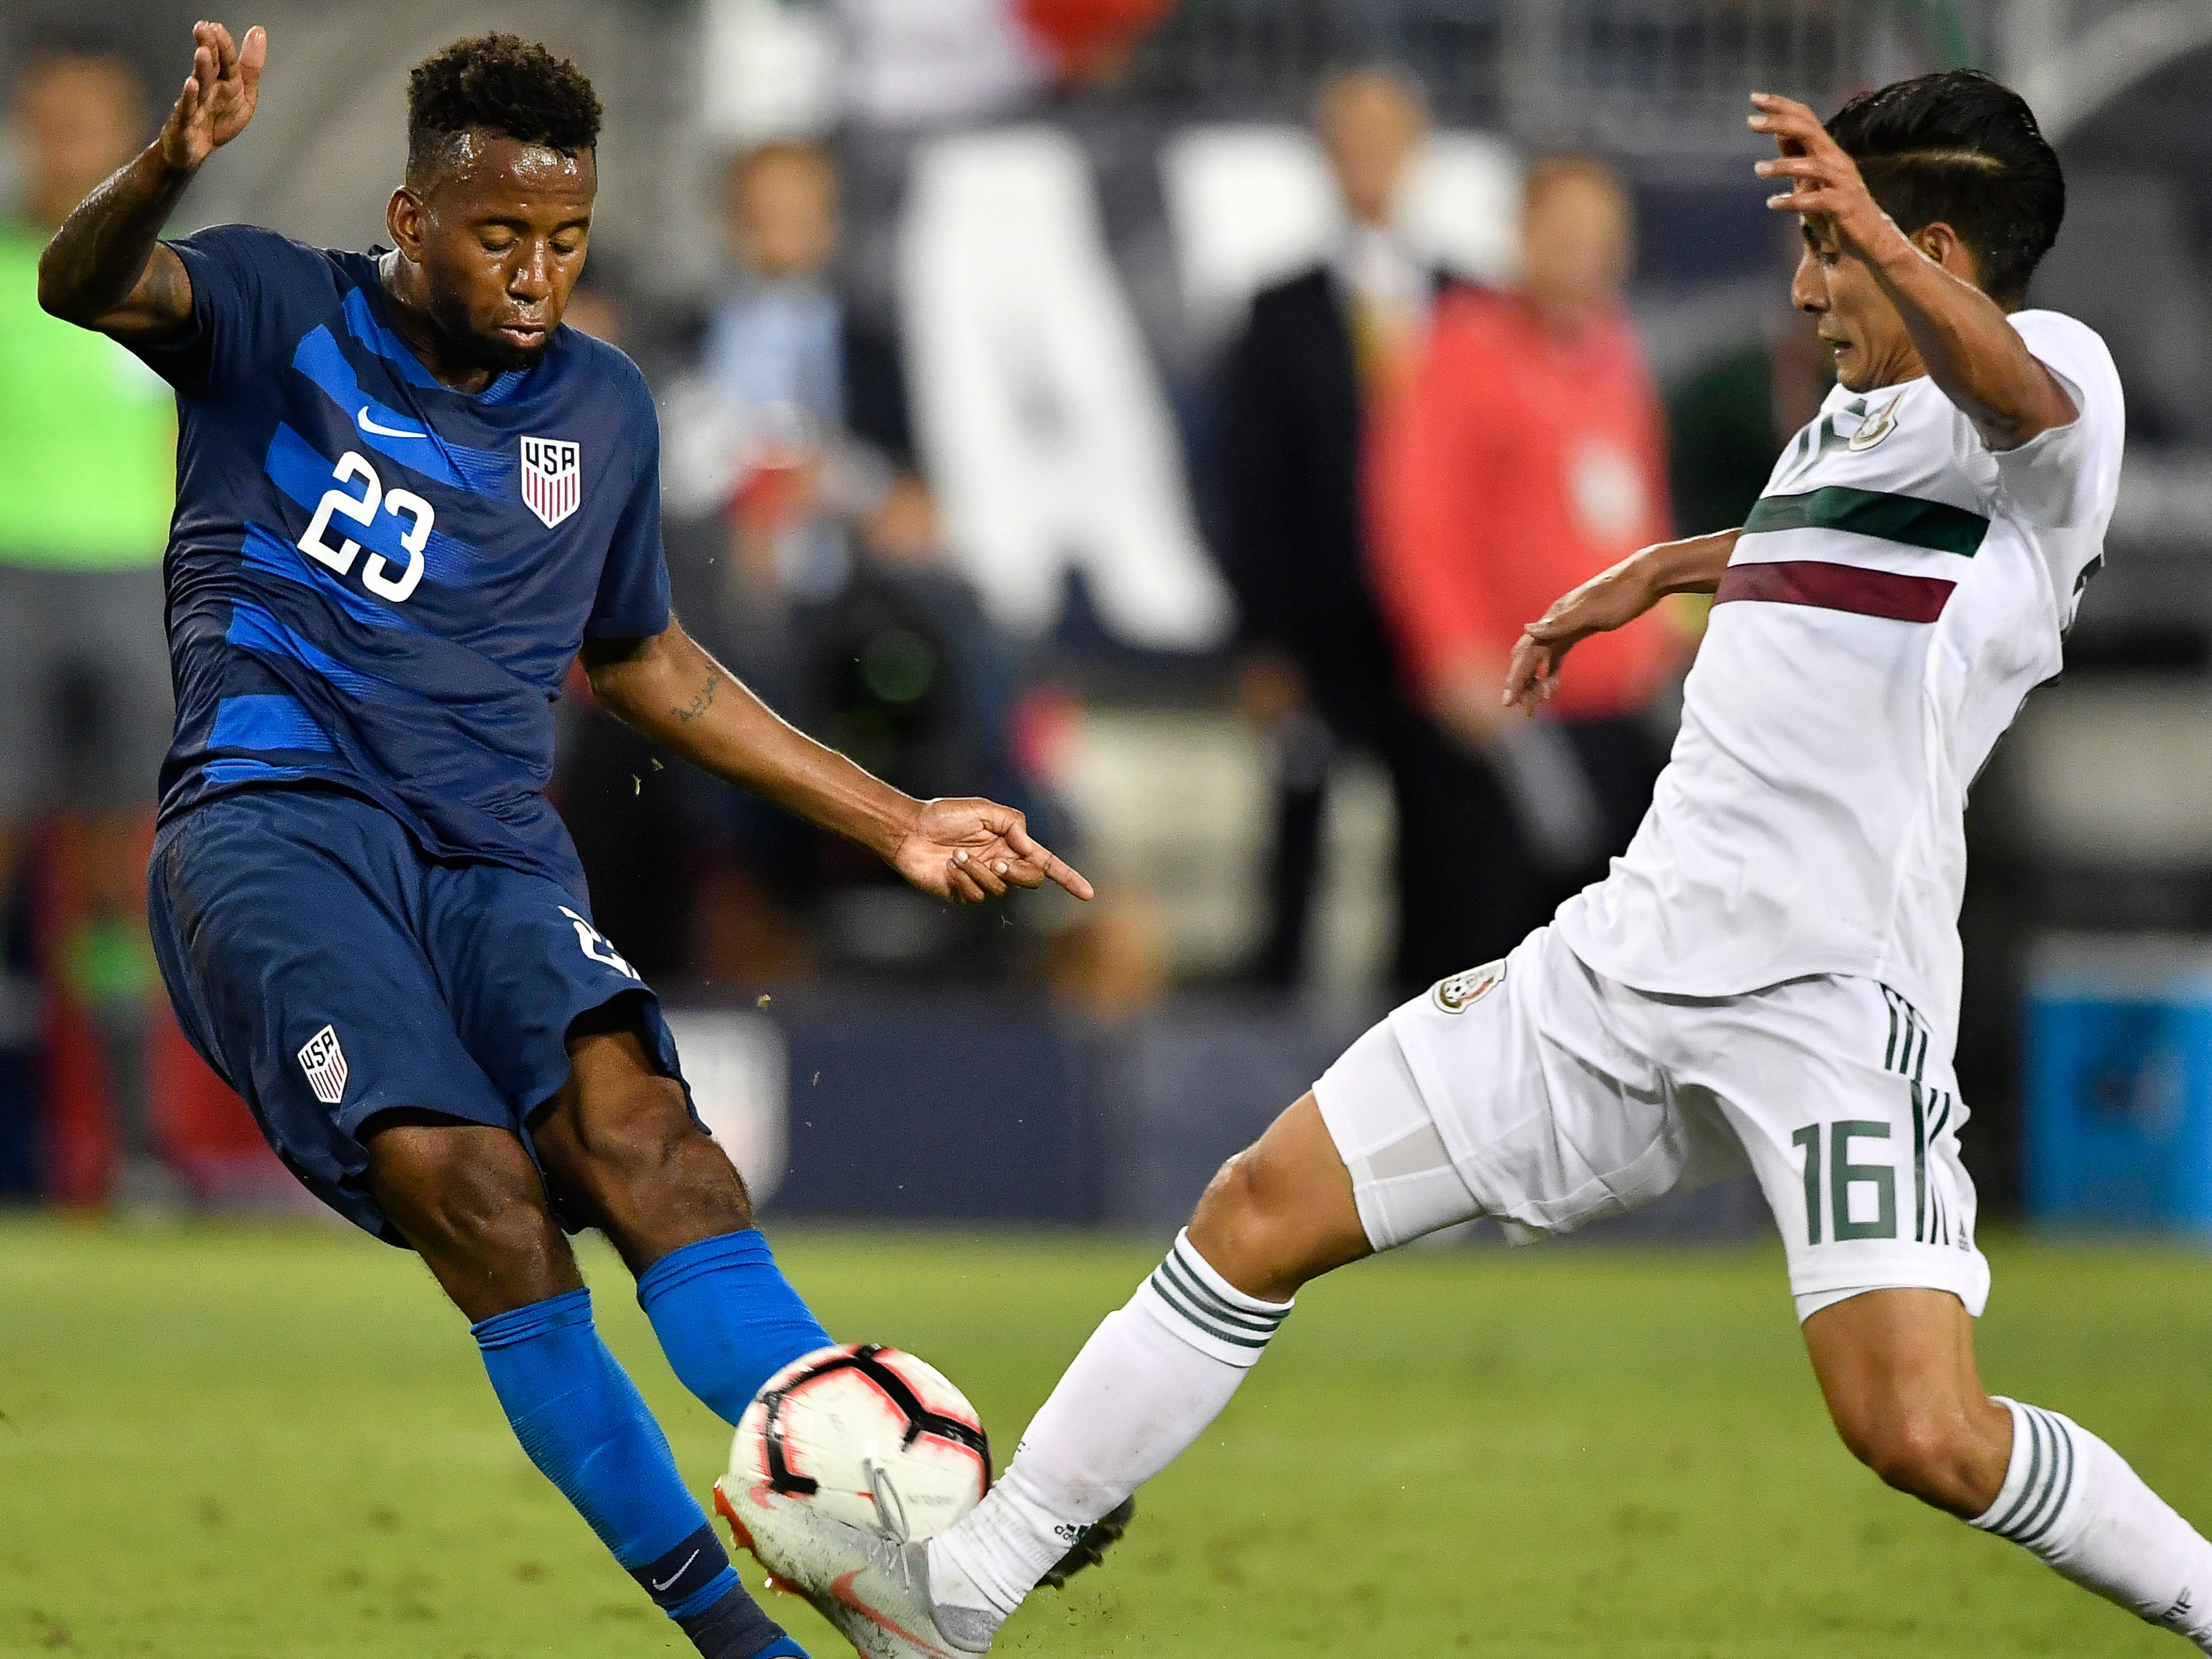 USA midfielder Kellyn Acosta (23) kicks the ball past Mexico midfielder Erick Aguirre (16) during the second half of their game at Nissan Stadium Tuesday, Sept. 11, 2018, in Nashville, Tenn.